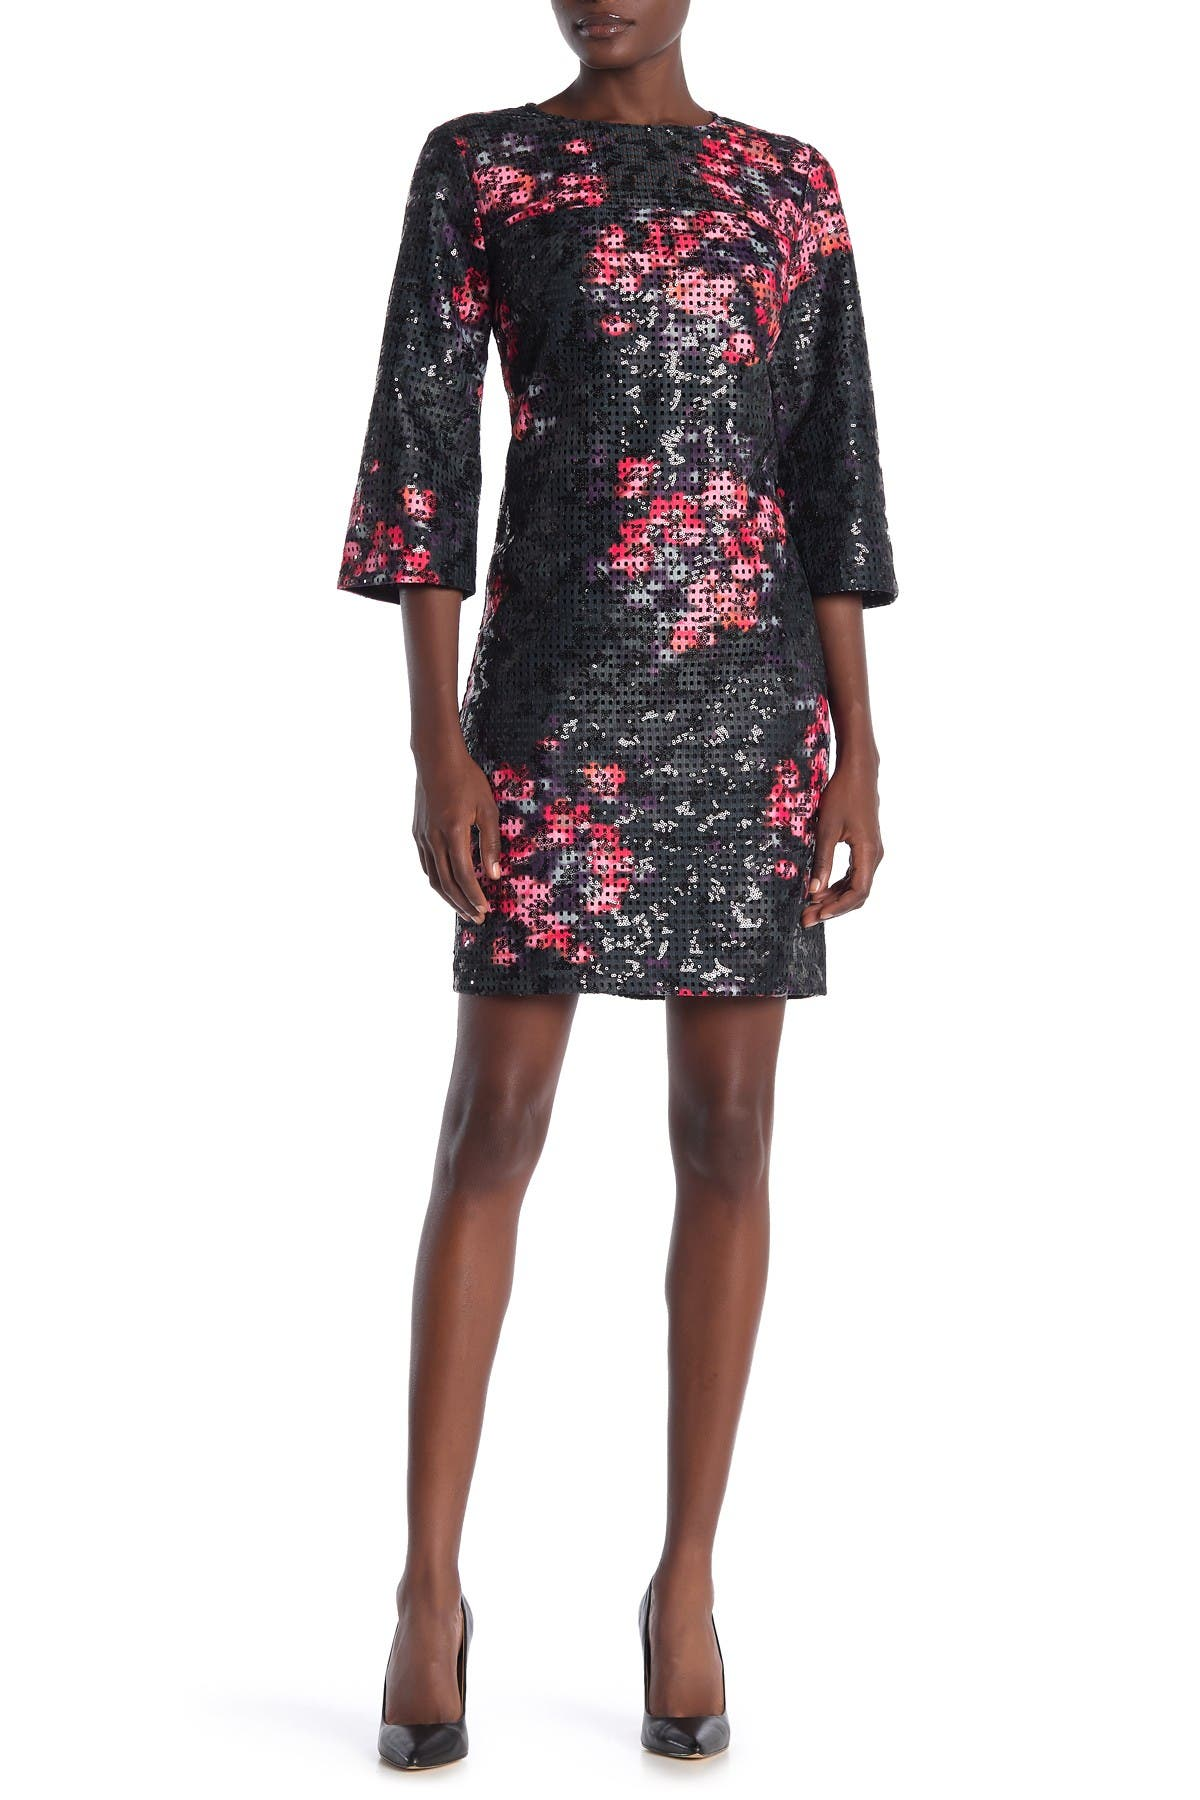 Image of trina Trina Turk Grenandine Floral Print Perforated Dress